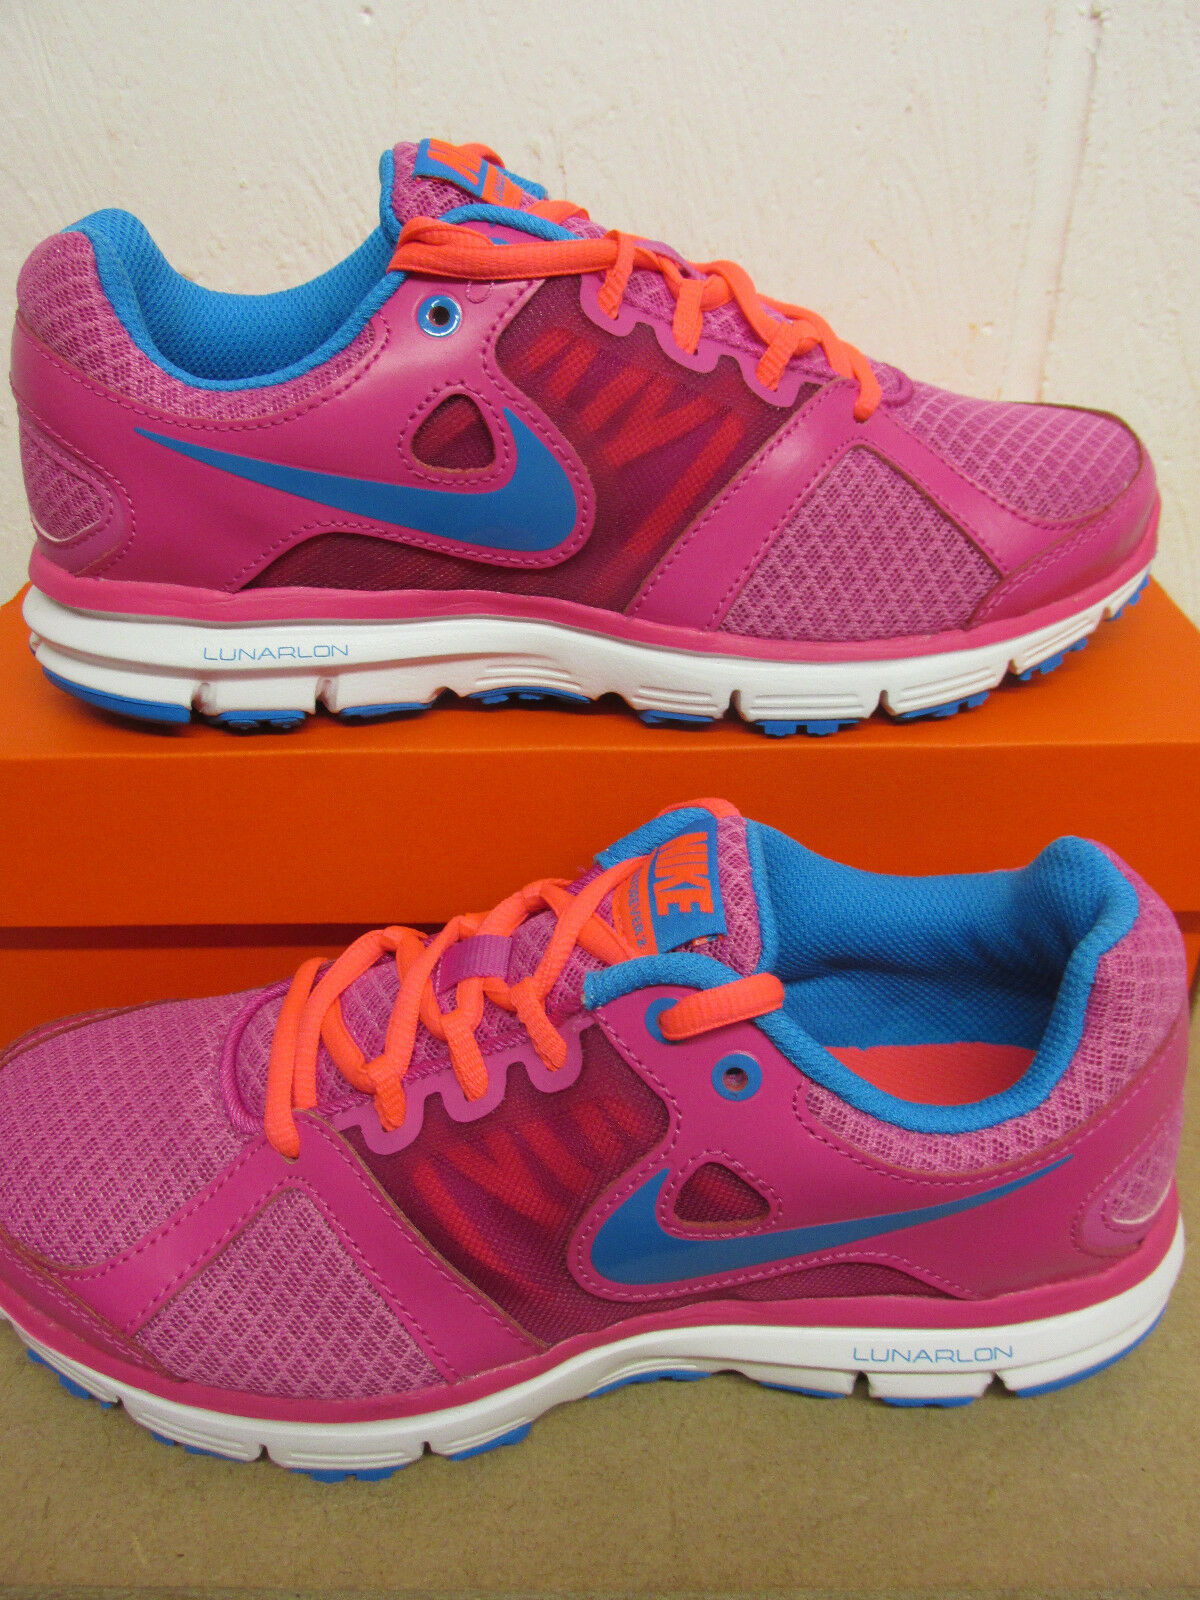 Nike Womens Lunar Forever 2 Sneakers Running Trainers 554895 600 Sneakers 2 Shoes 056ad5